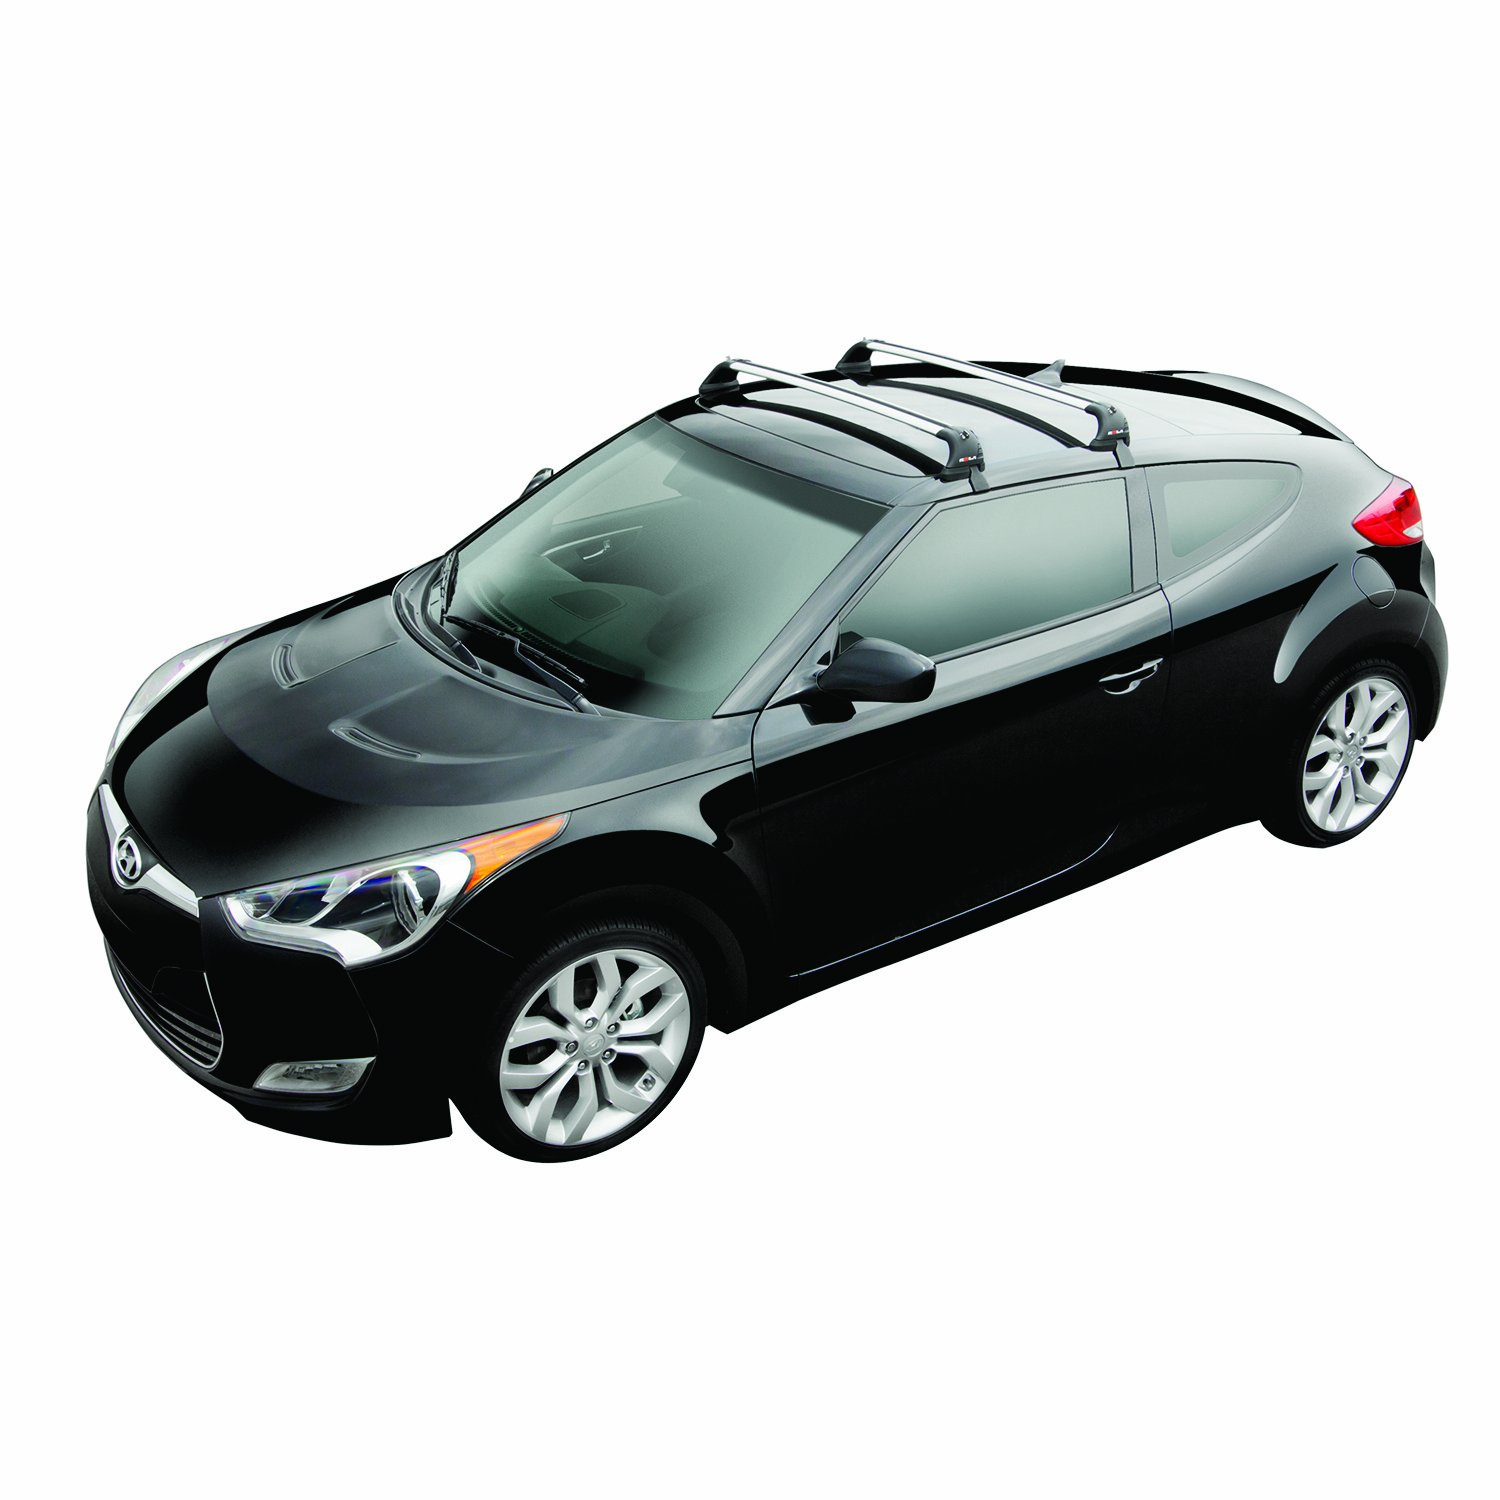 ROLA 59726 Removable Mount GTX Series Roof Rack for Hyundai Veloster by Rola: Amazon.es: Coche y moto